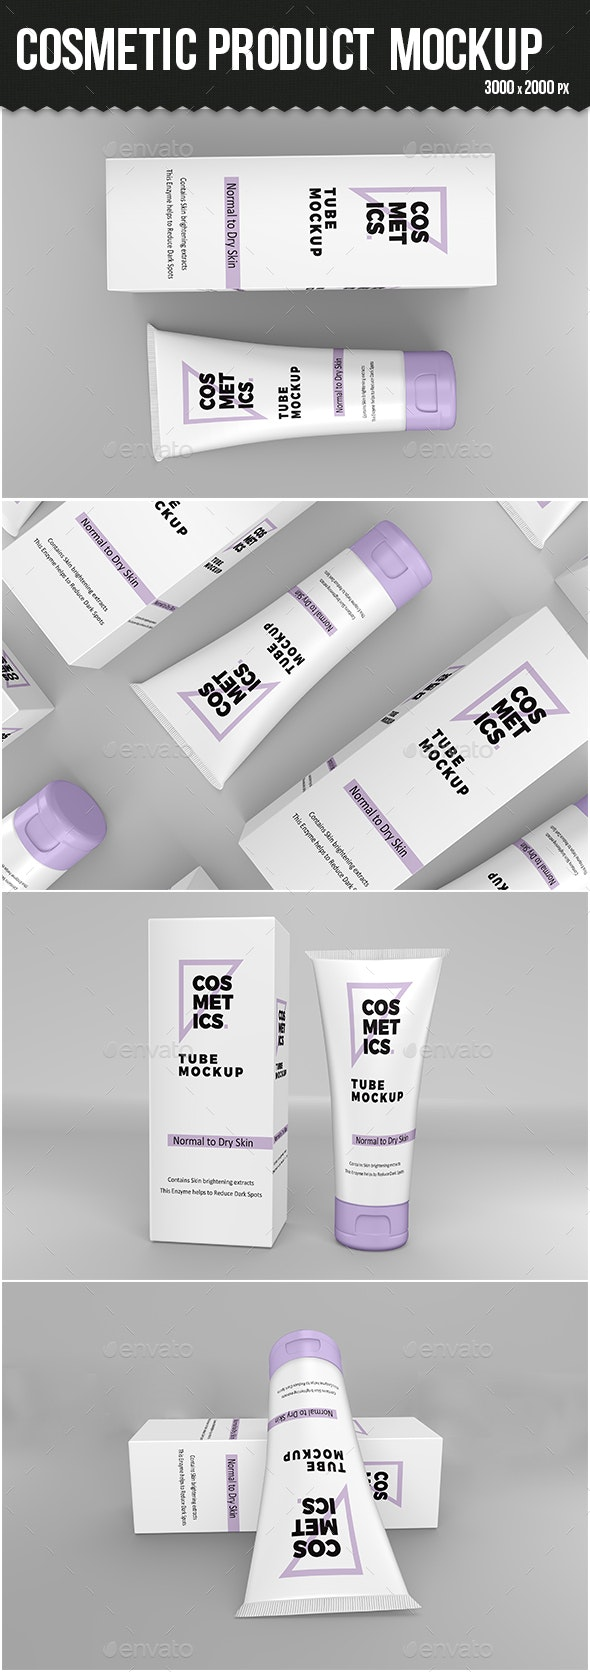 Cosmetic Products Mockup - Beauty Packaging